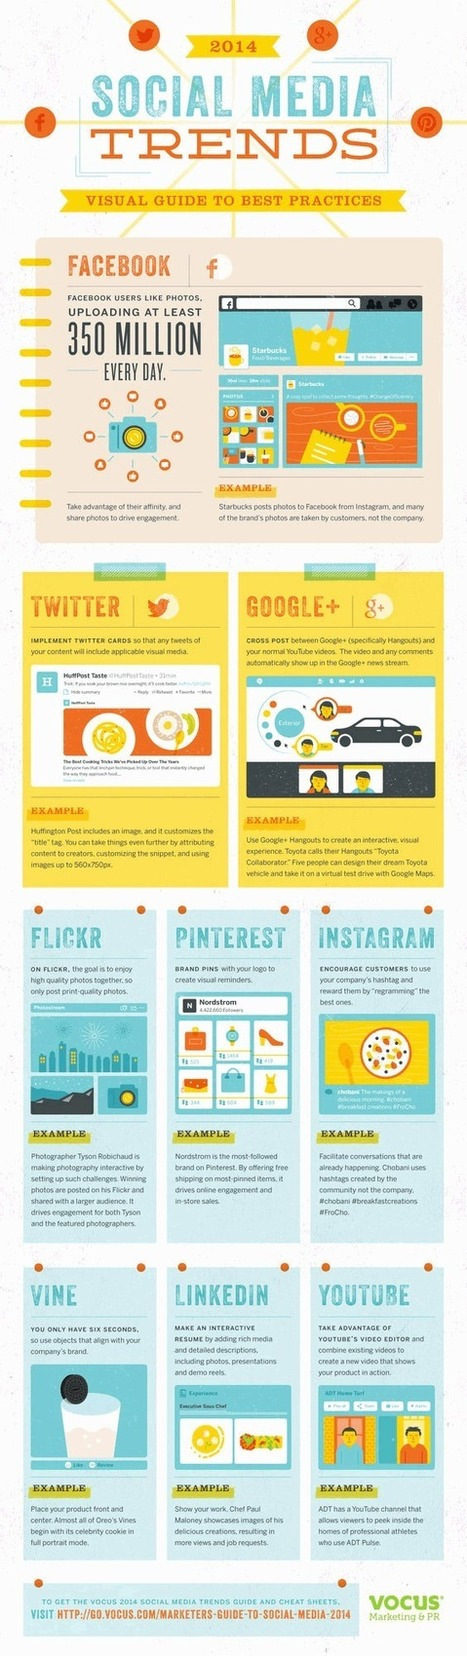 Social Media Marketing Tips 2014: A visual guide to best practices on Facebook, Twitter, Google+ and more | social selling | Scoop.it